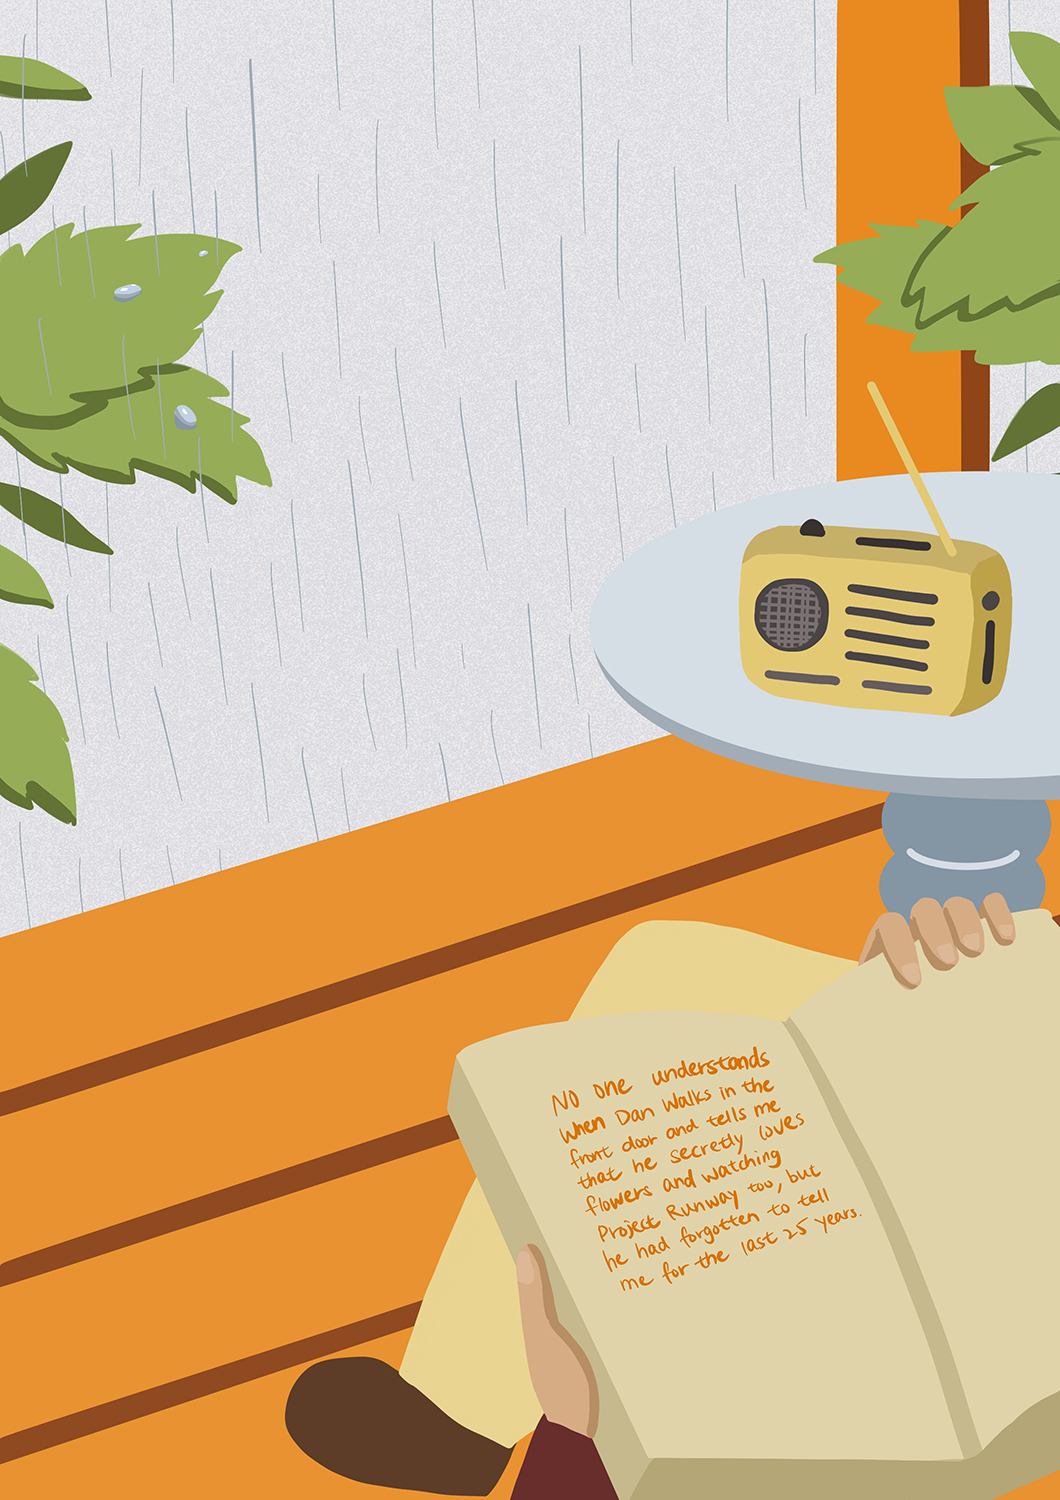 Person out of frame holds and reads an open book on the porch on a rainy day. A radio sits on top of a table.